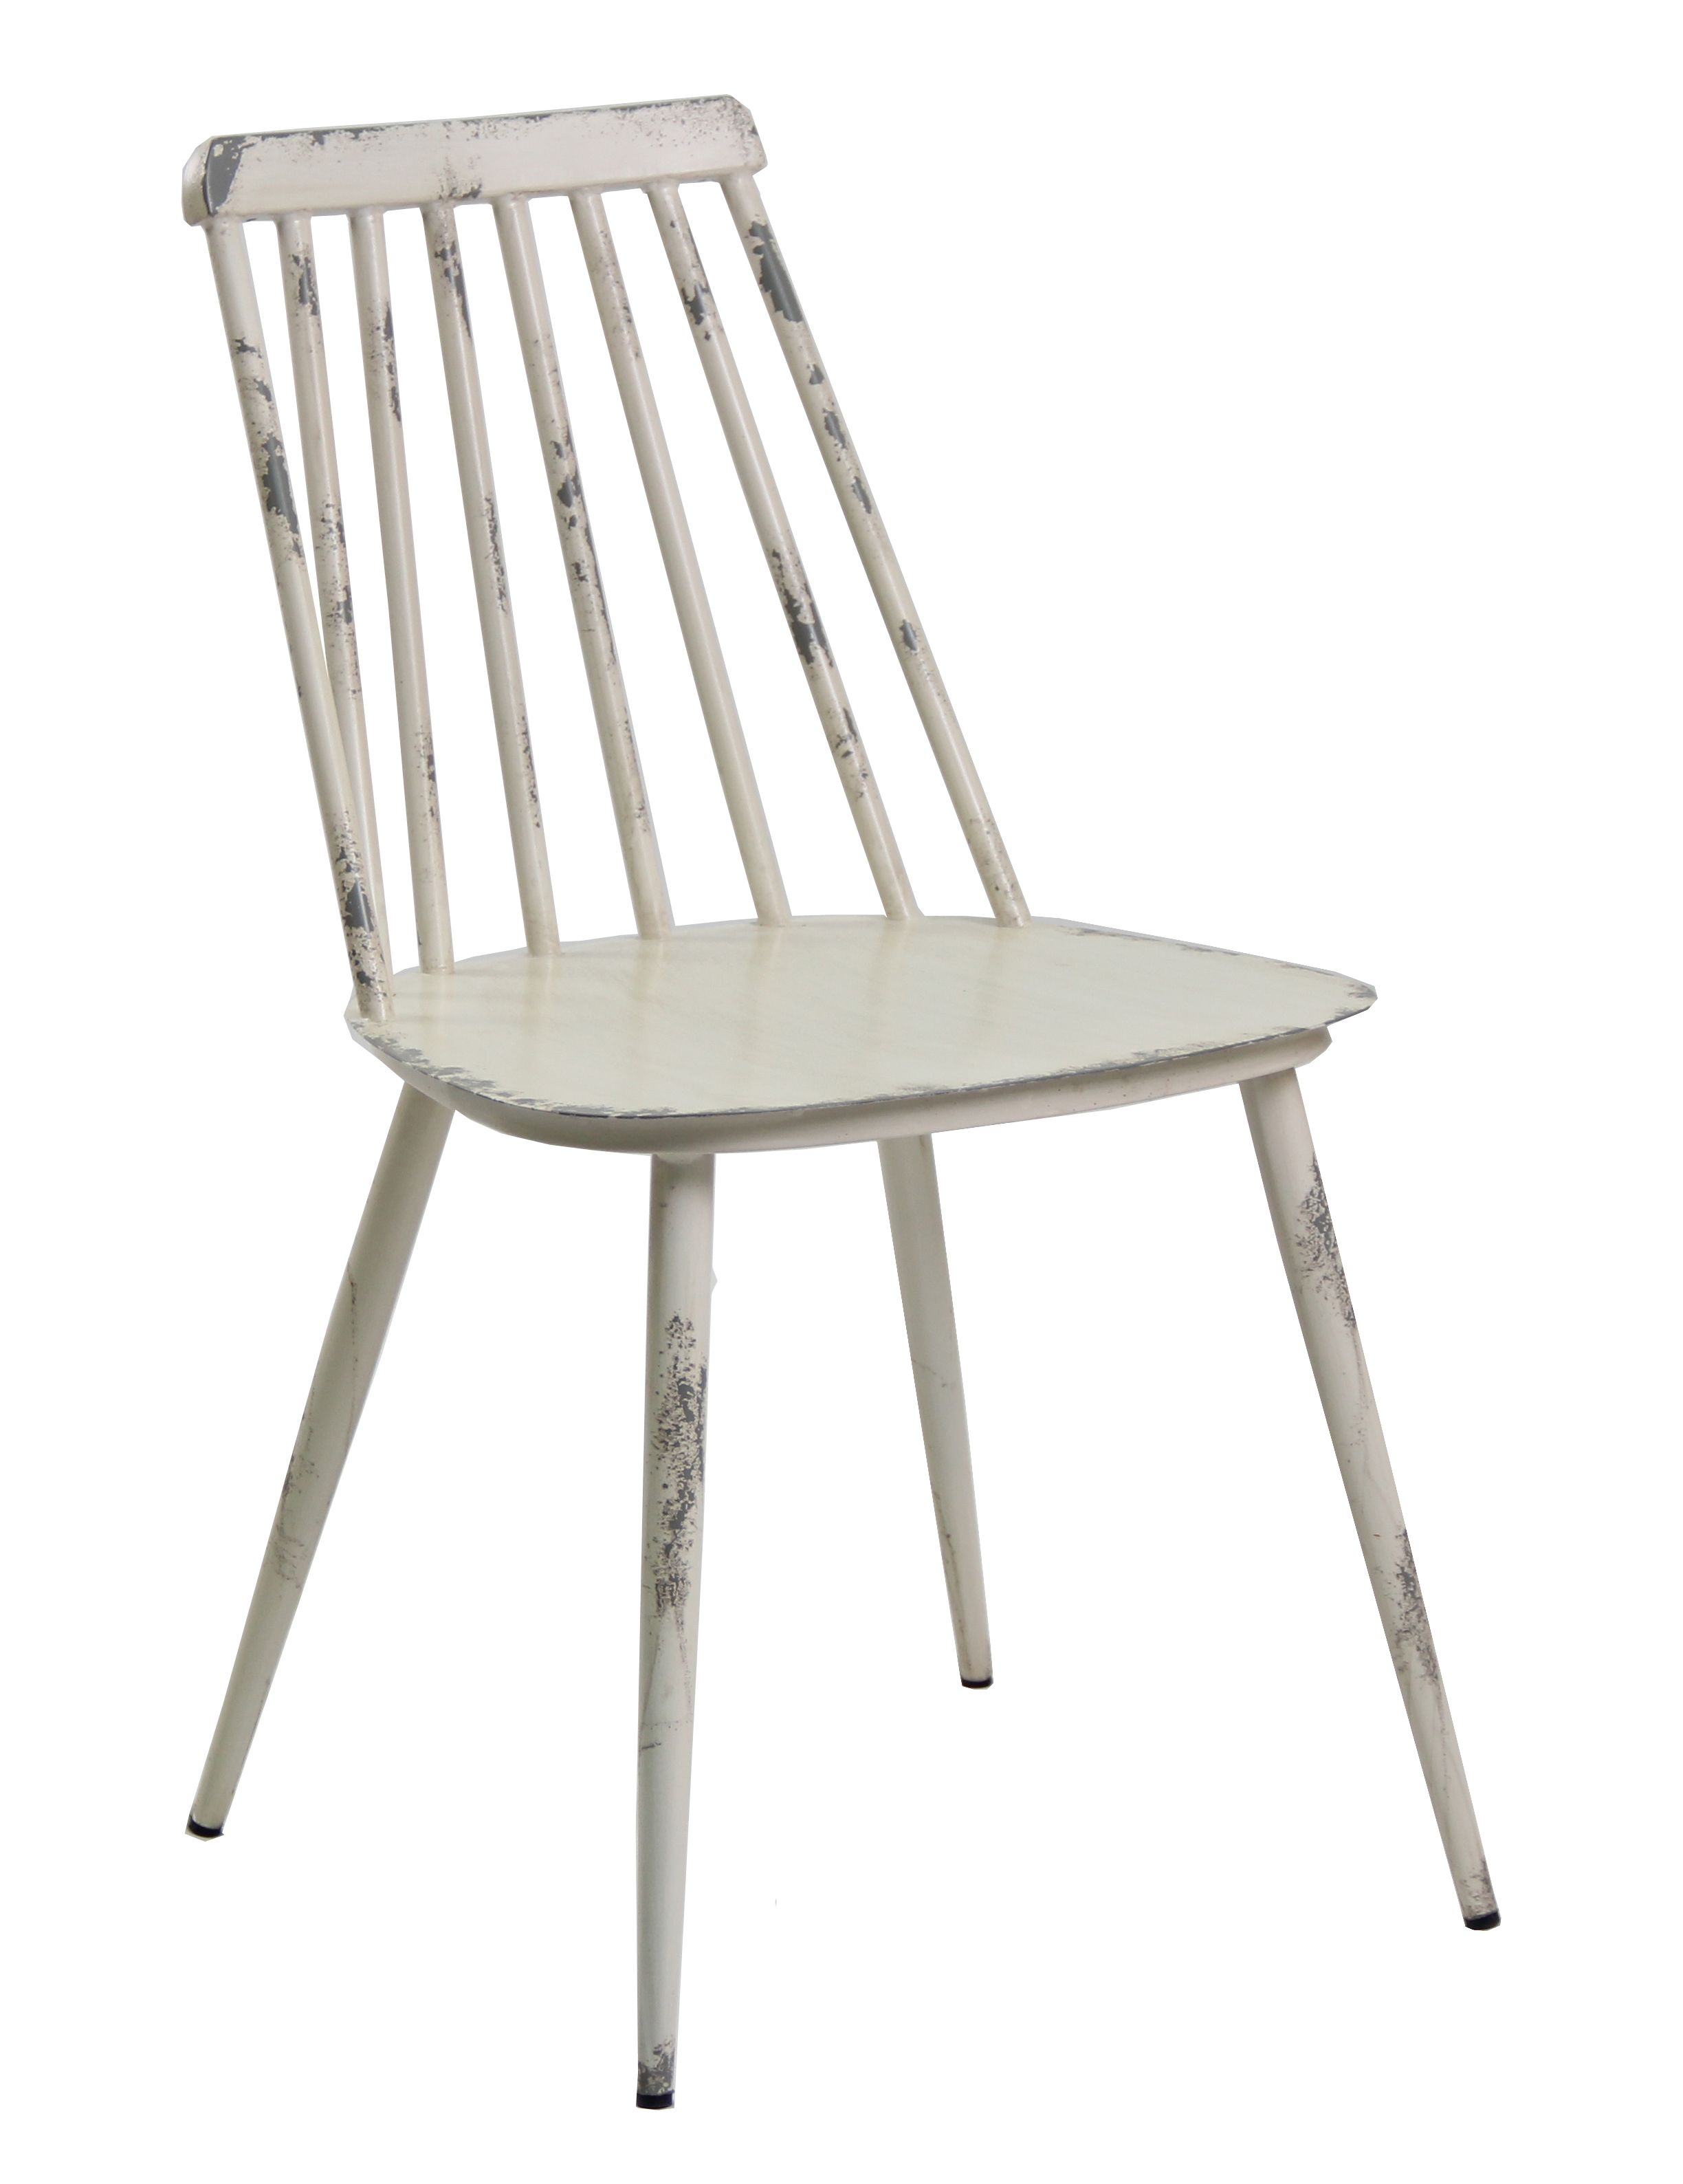 Aluminium Dinning Chair Retro White Set of 2